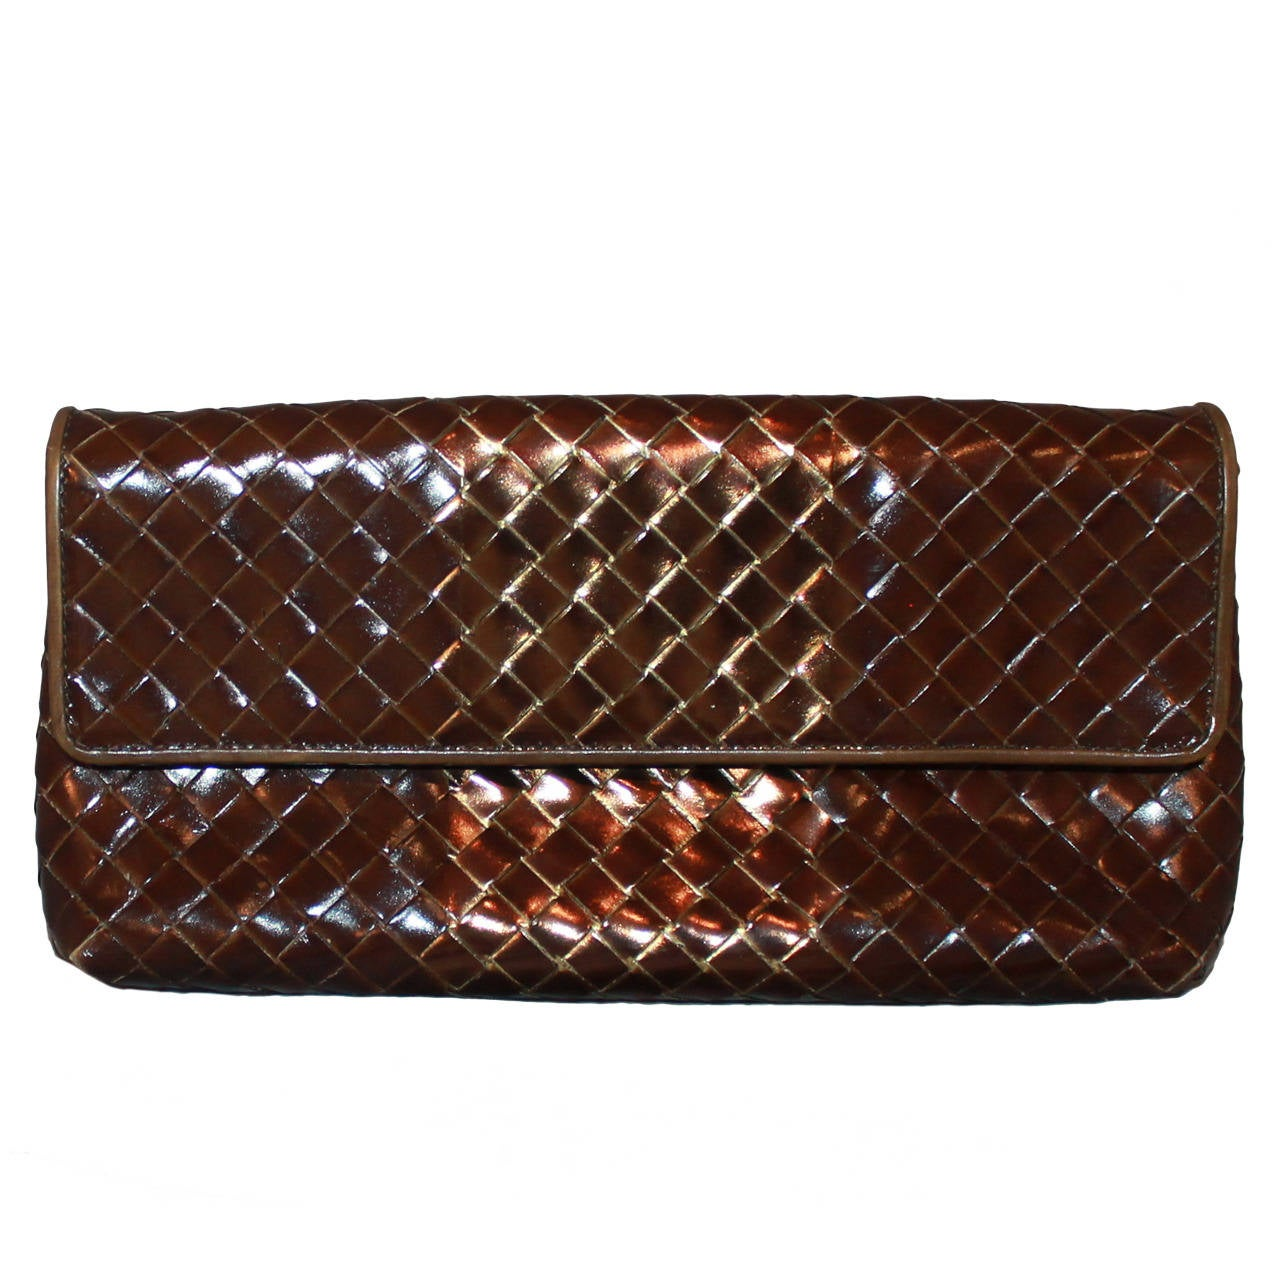 Bottega Veneta Bronze & Brown Braided Leather Clutch